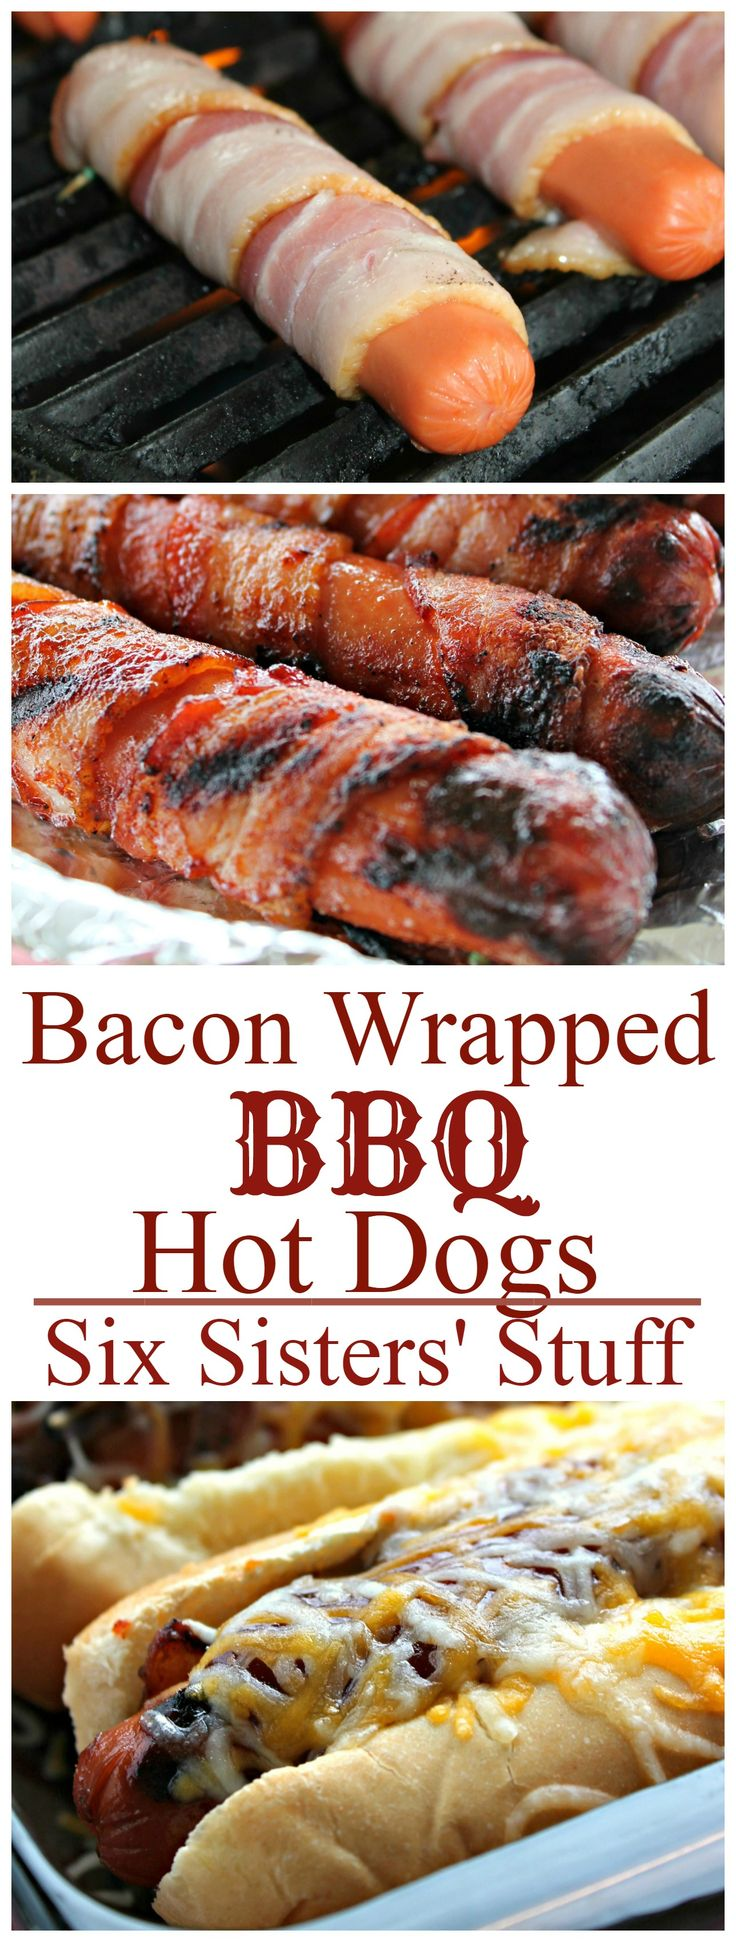 Hot Dogs just got a whole lot better with these BBQ Bacon Wrapped Hot Dogs from Sixsistersstuff.com